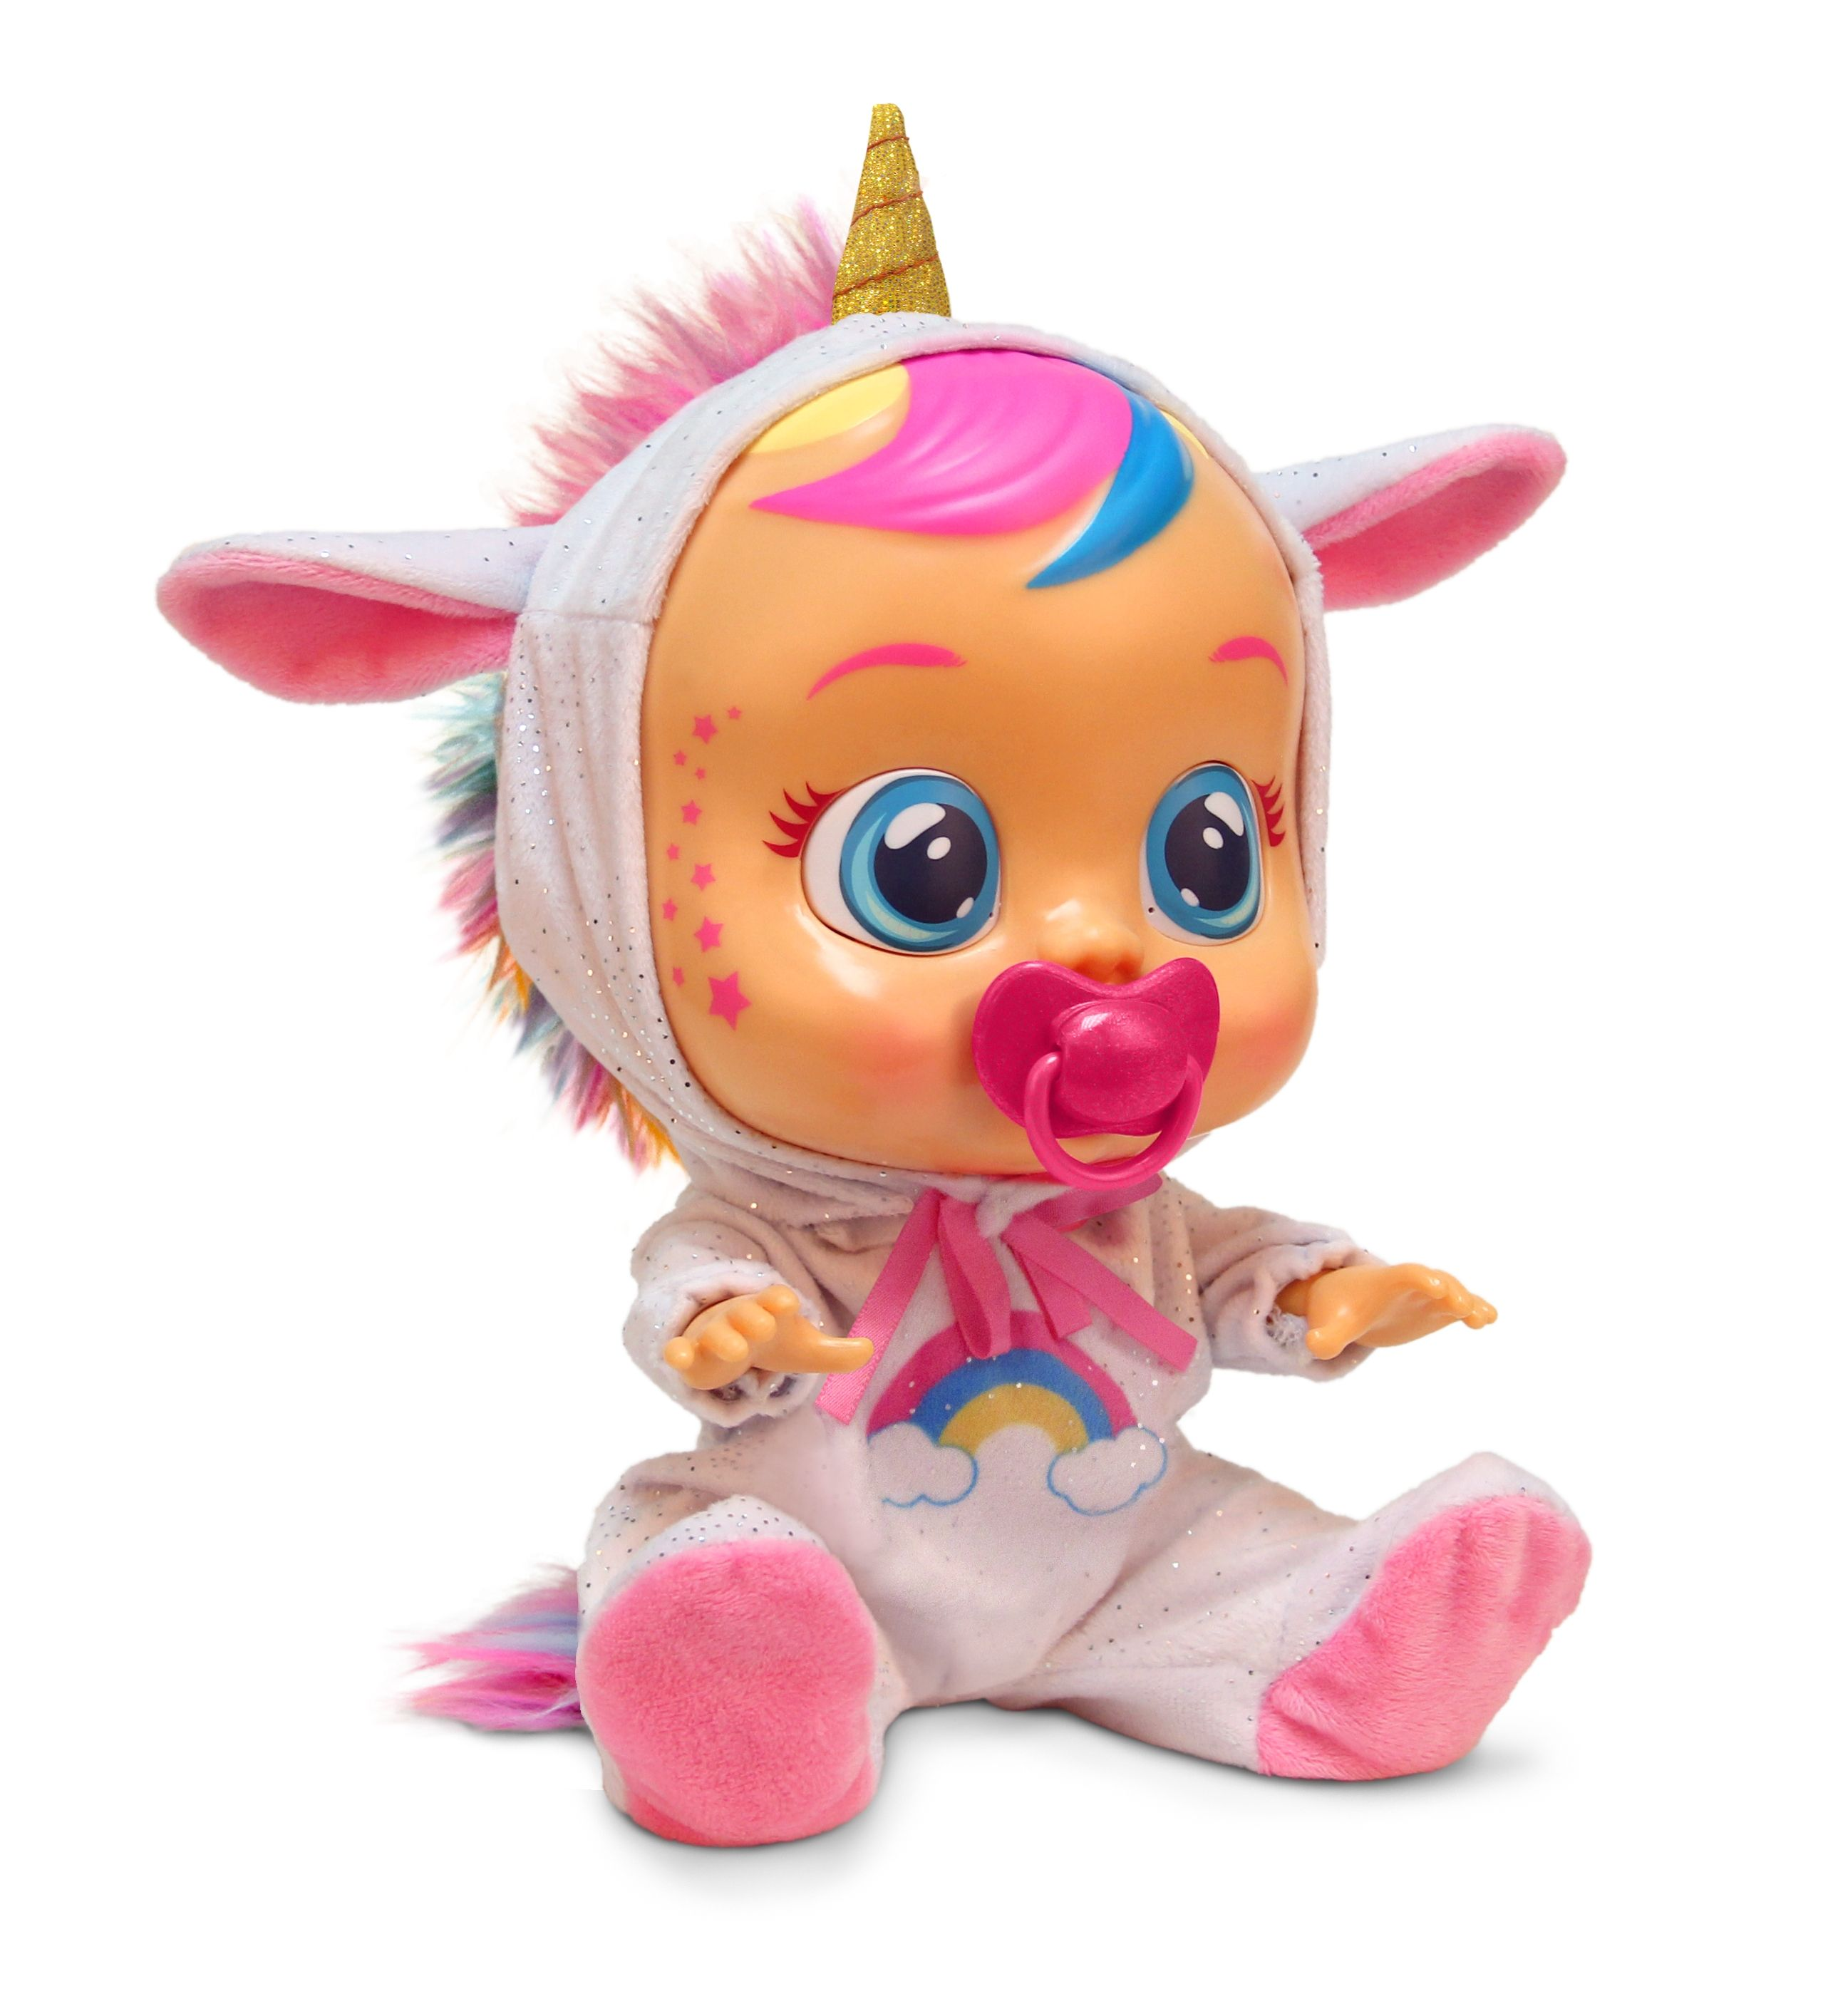 Cry Babies Dreamy Baby Doll Walmart Exclusive Walmart Com Baby Alive Dolls Baby Dolls Baby Girl Toys